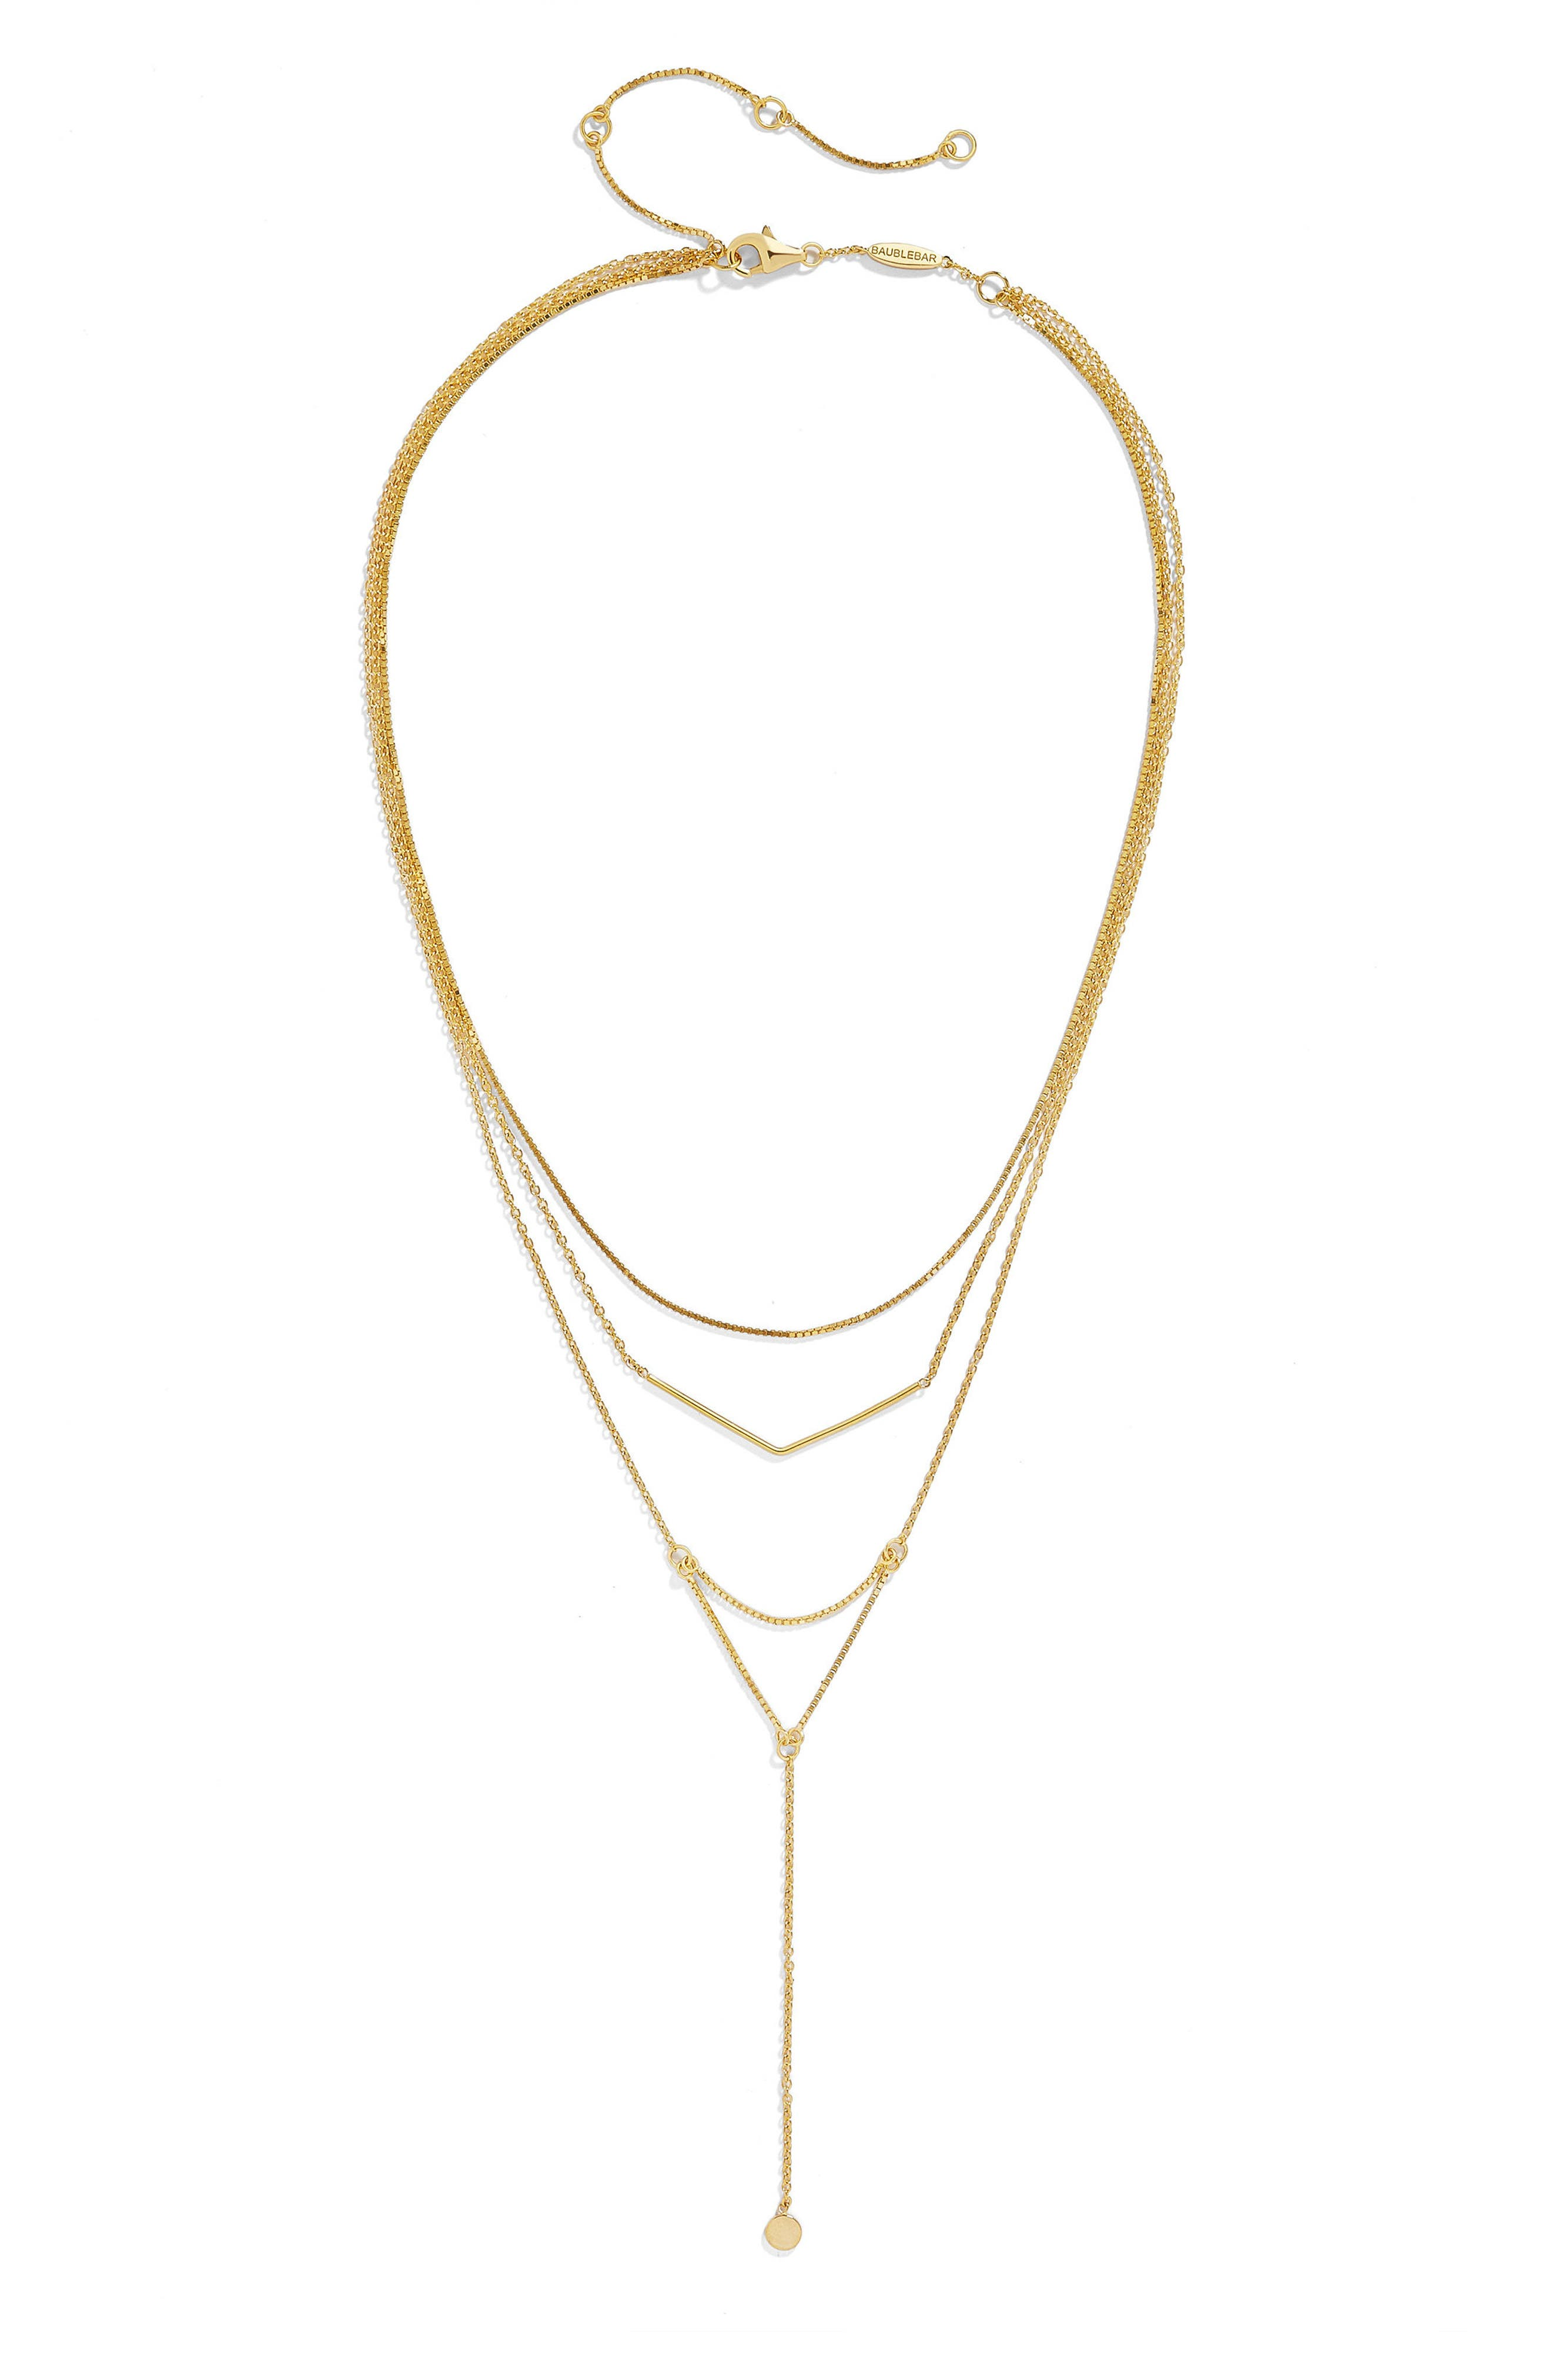 Tris Everyday Connected Y 18-Karat Gold Plate Necklace,                             Main thumbnail 1, color,                             710